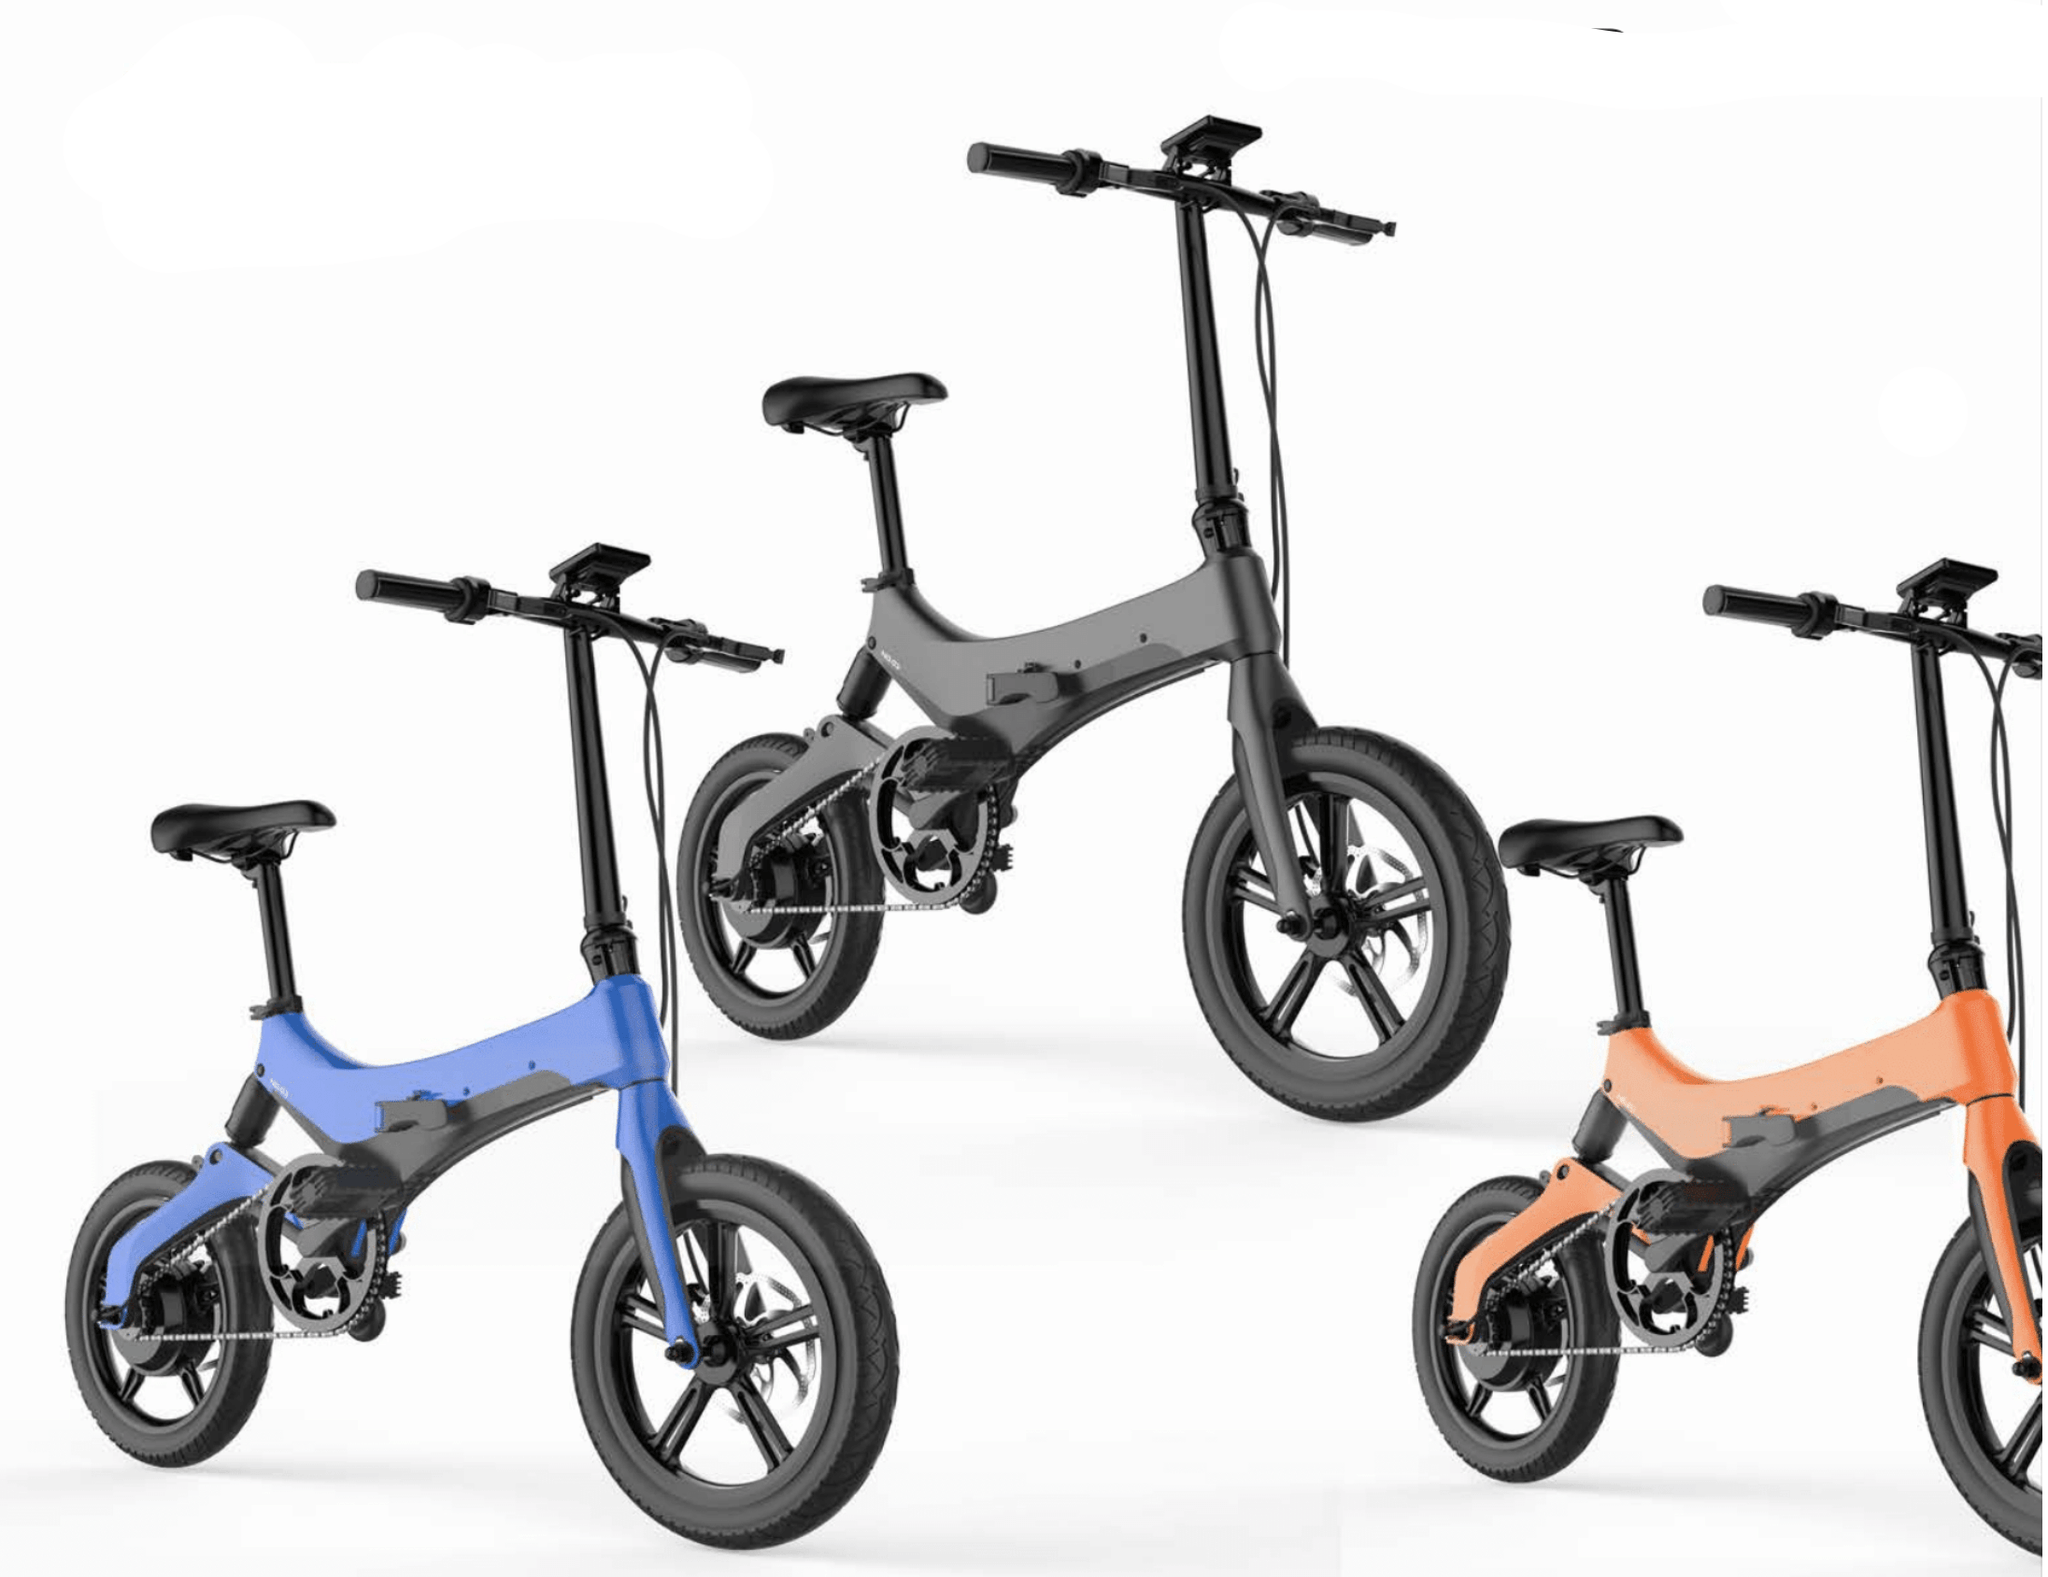 Buy Gocycle G3 GS pedal assist electric folding sport bike